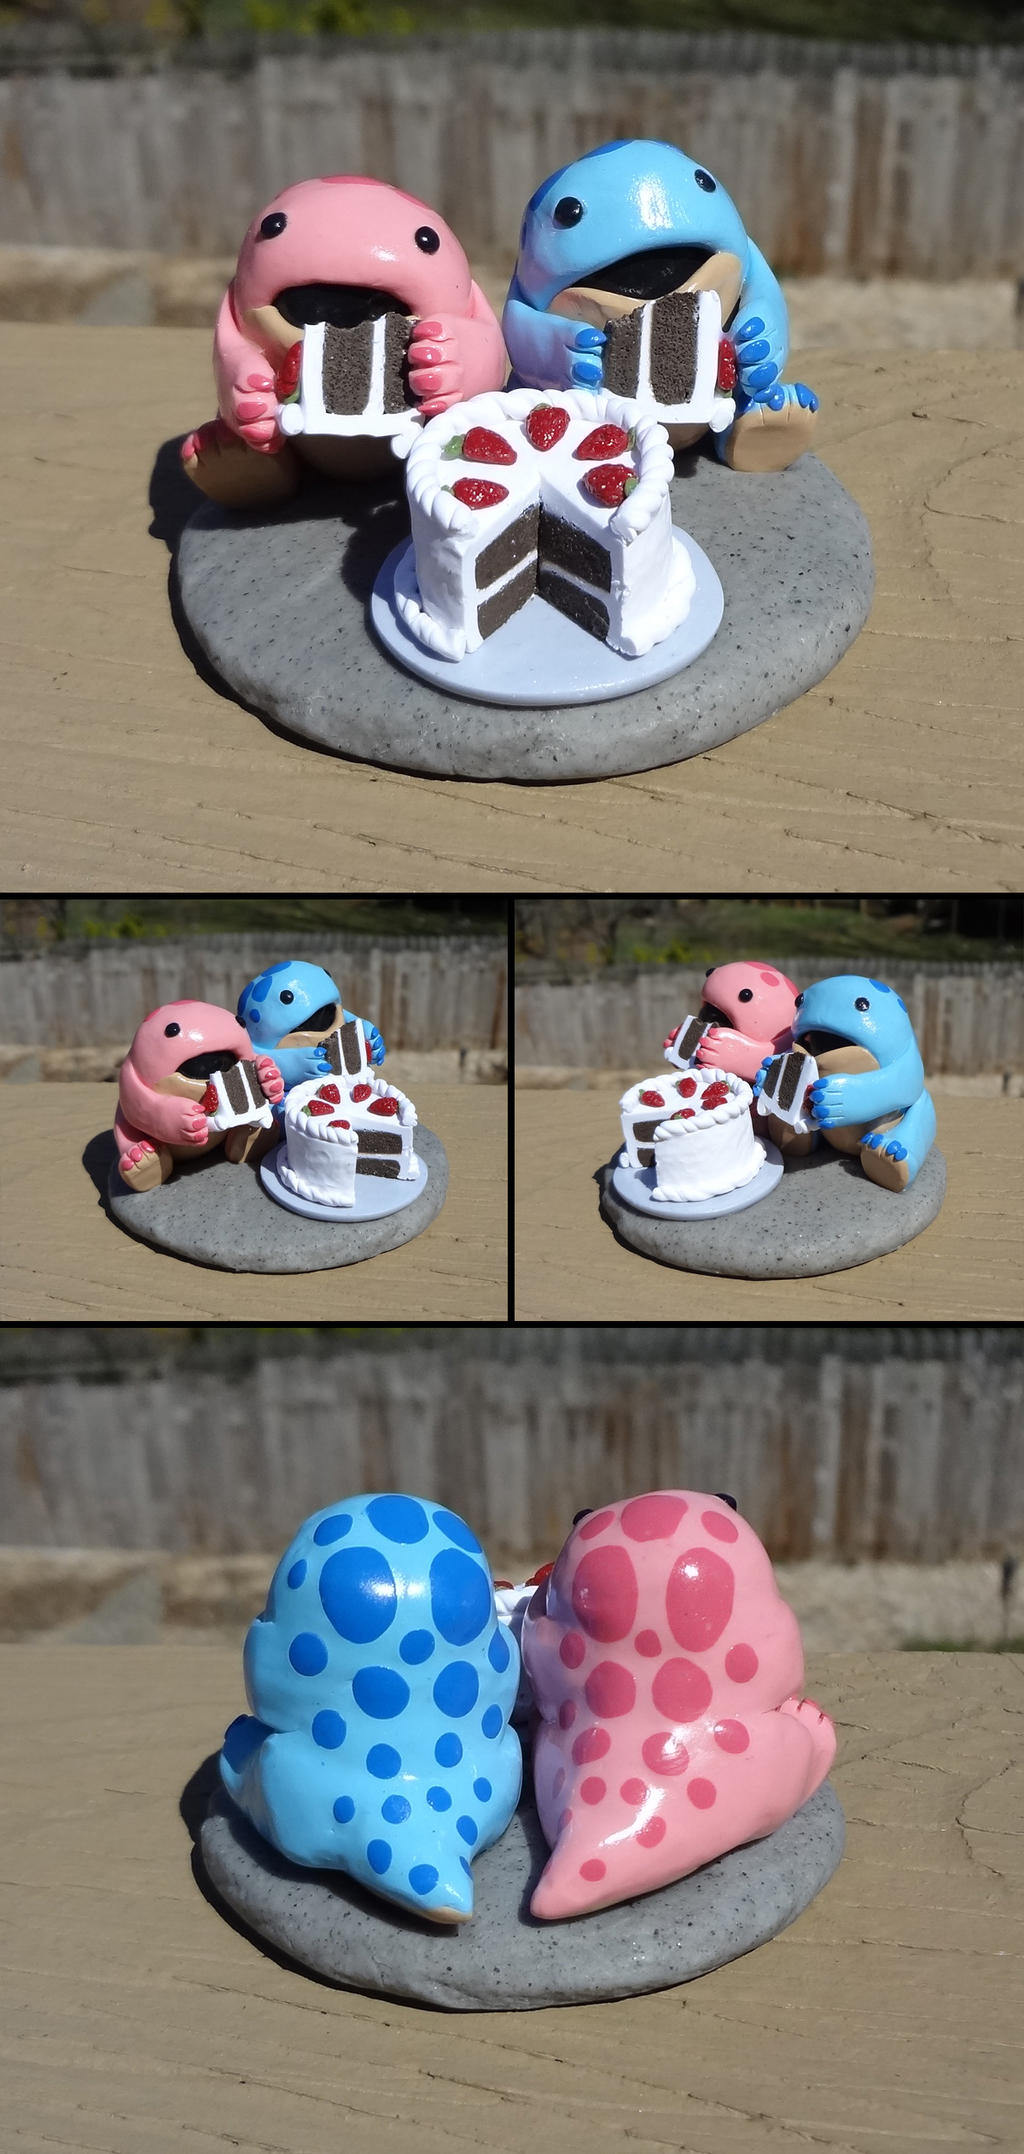 Quaggan pair with cake